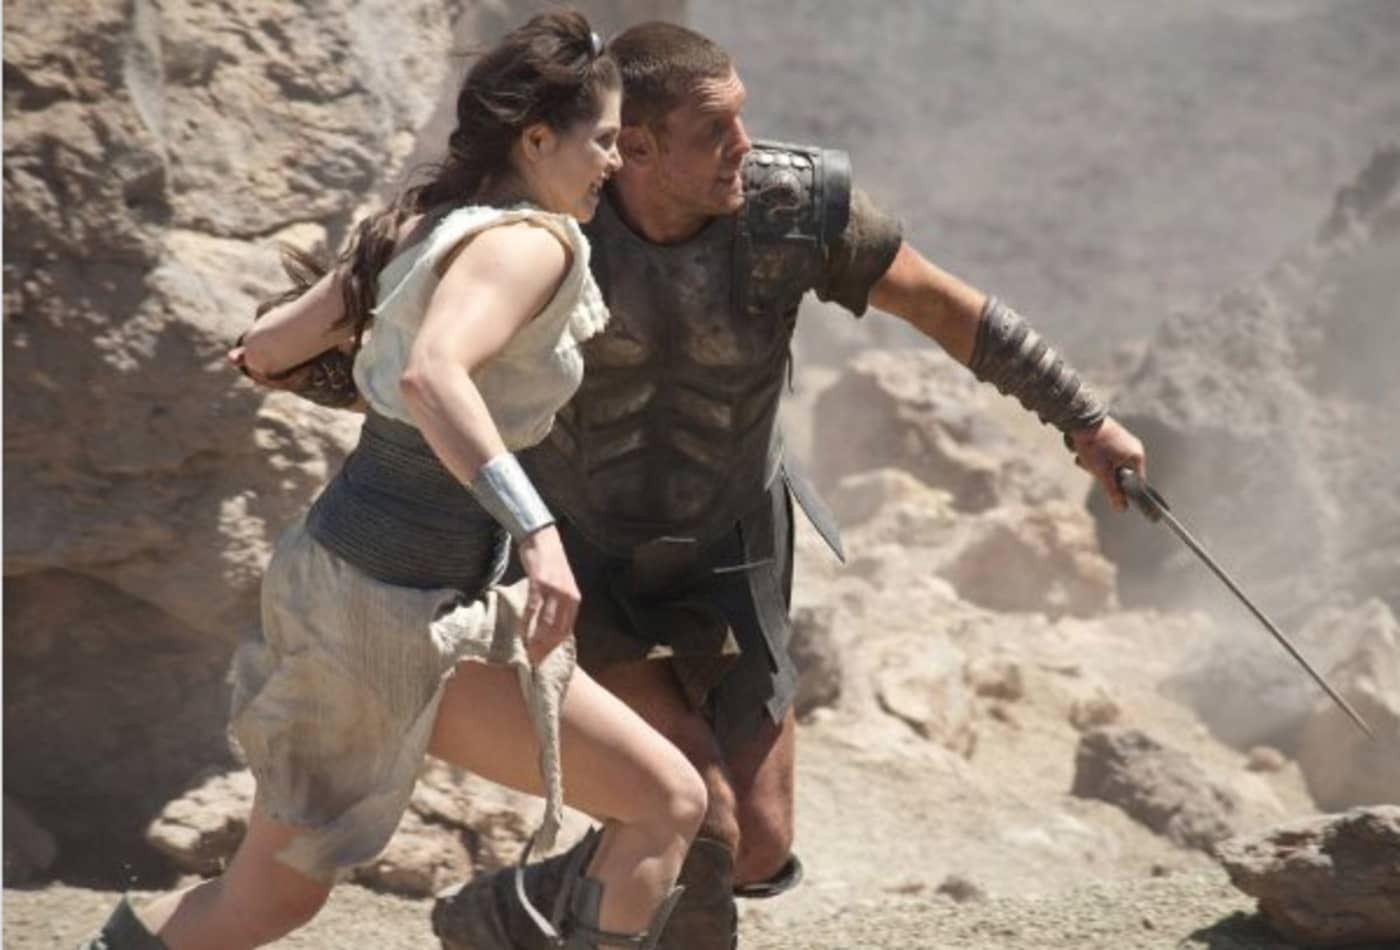 Clash-Of-The-Titans-Highest-Grossing-Fantasy-Movies-CNBC.jpg